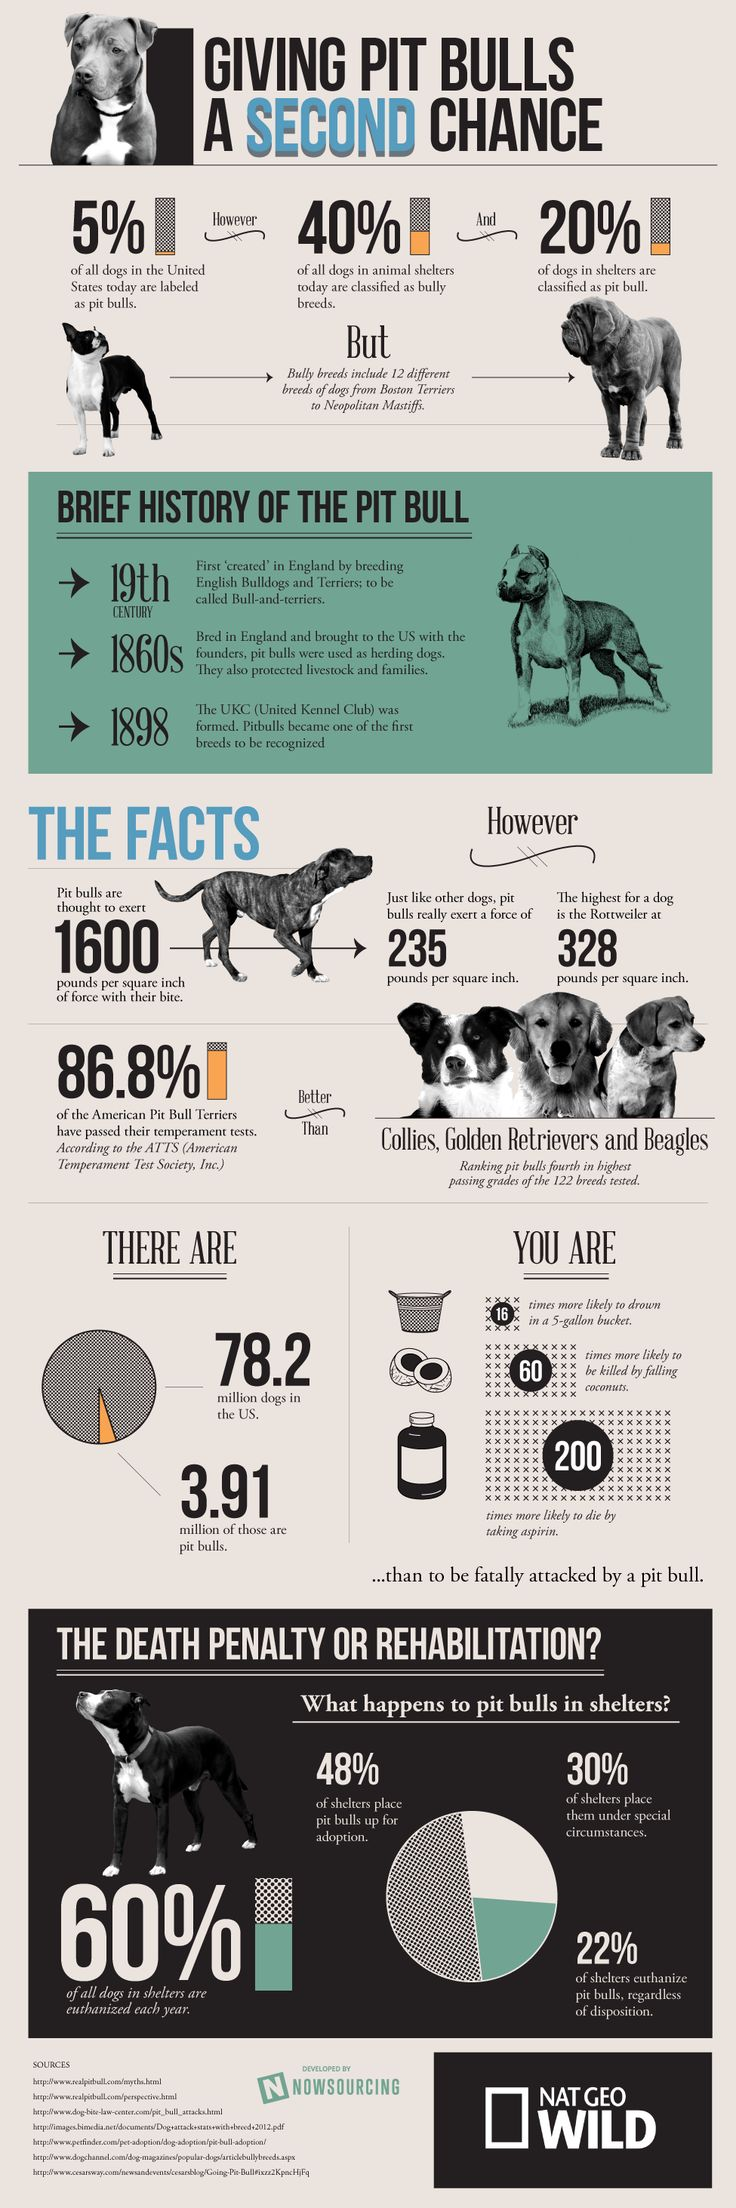 """This infographic provides a deeper look into the truth about the pit bull breed.""  Where do you stand on this? ~ any bad dog, regardless of breed, starts with bad owners. Love my Pitt."